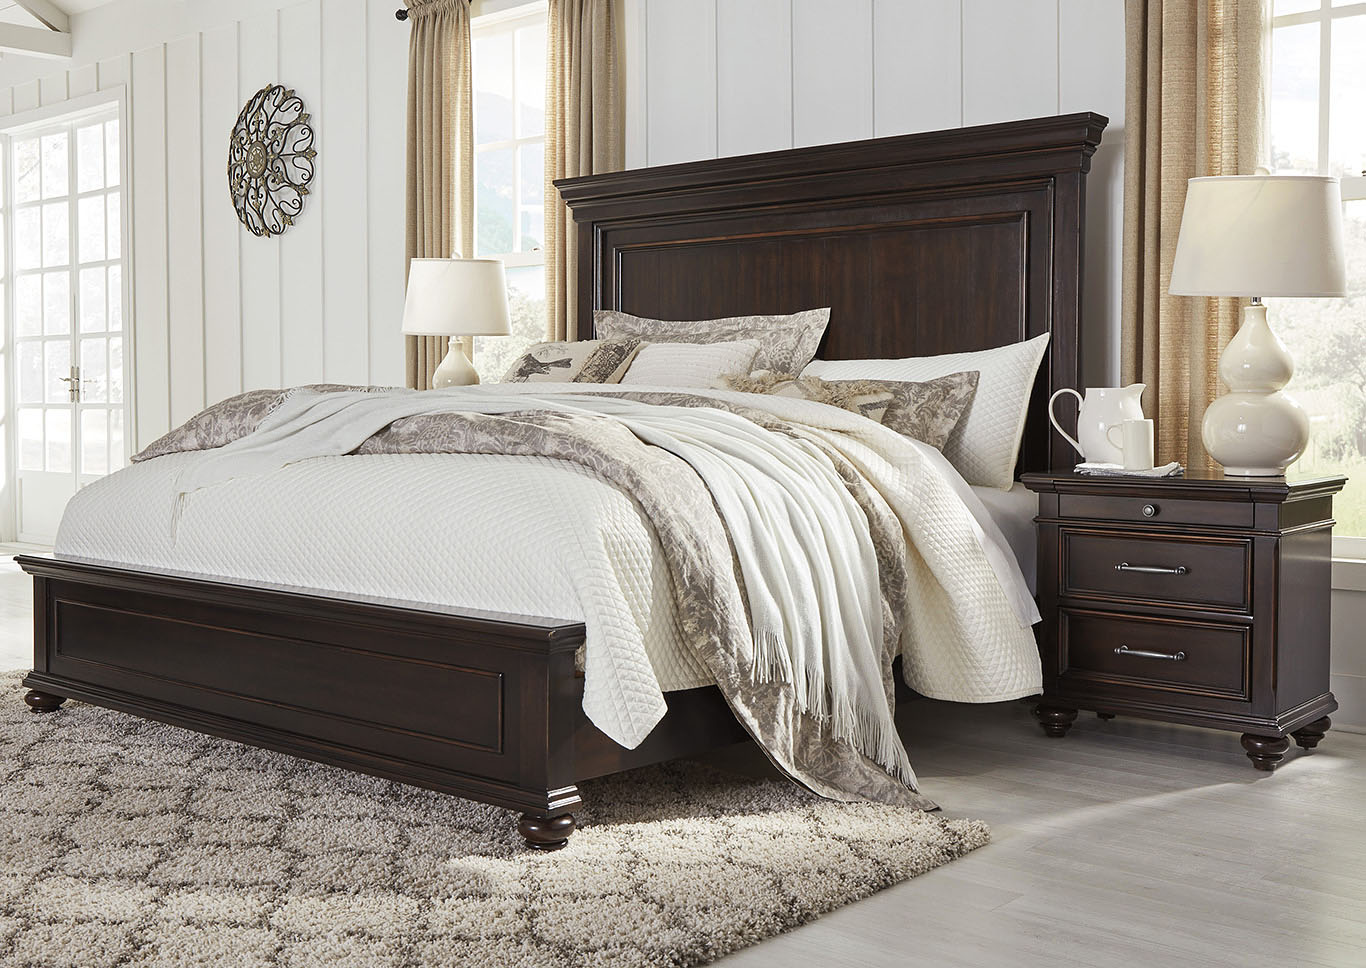 Brynhurst Brown King Storage Bed,Signature Design By Ashley